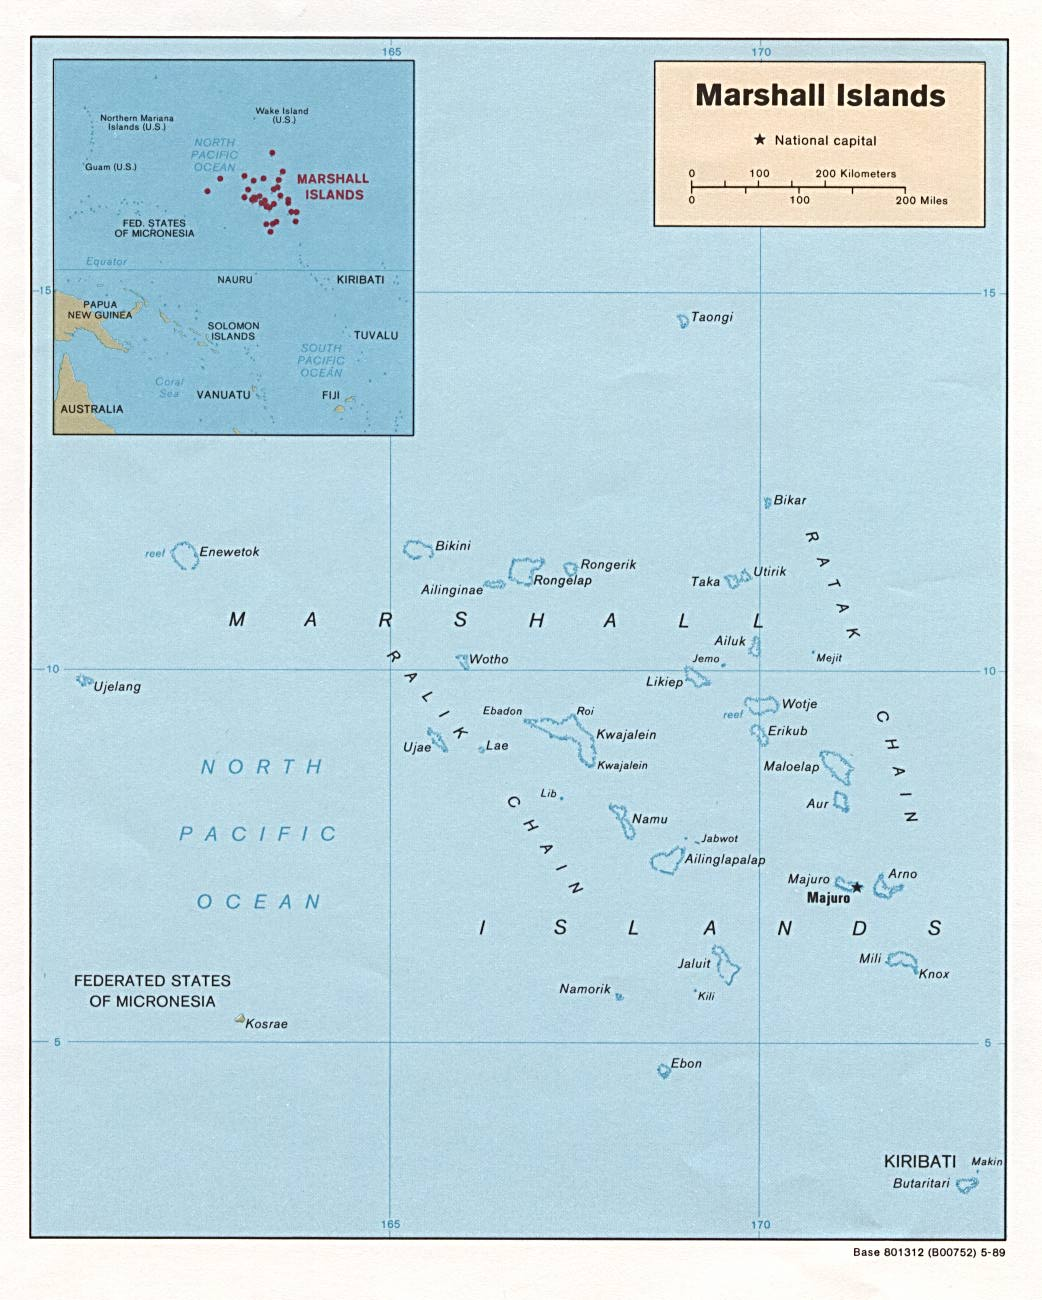 Kwajalein Atoll, Marshall Islands on map of singapore, map of majuro atoll, map of mst, map of the aleutian islands, map of marshall islands, map of bahrain, map of diego garcia, map of okinawa, map of mauritius, map of iceland, map of kwaj, map of funafuti, map of new britain island, map of malta, map of mili, map of guatemala, map of tahiti, map of guam, map of colombo, map of peleliu,